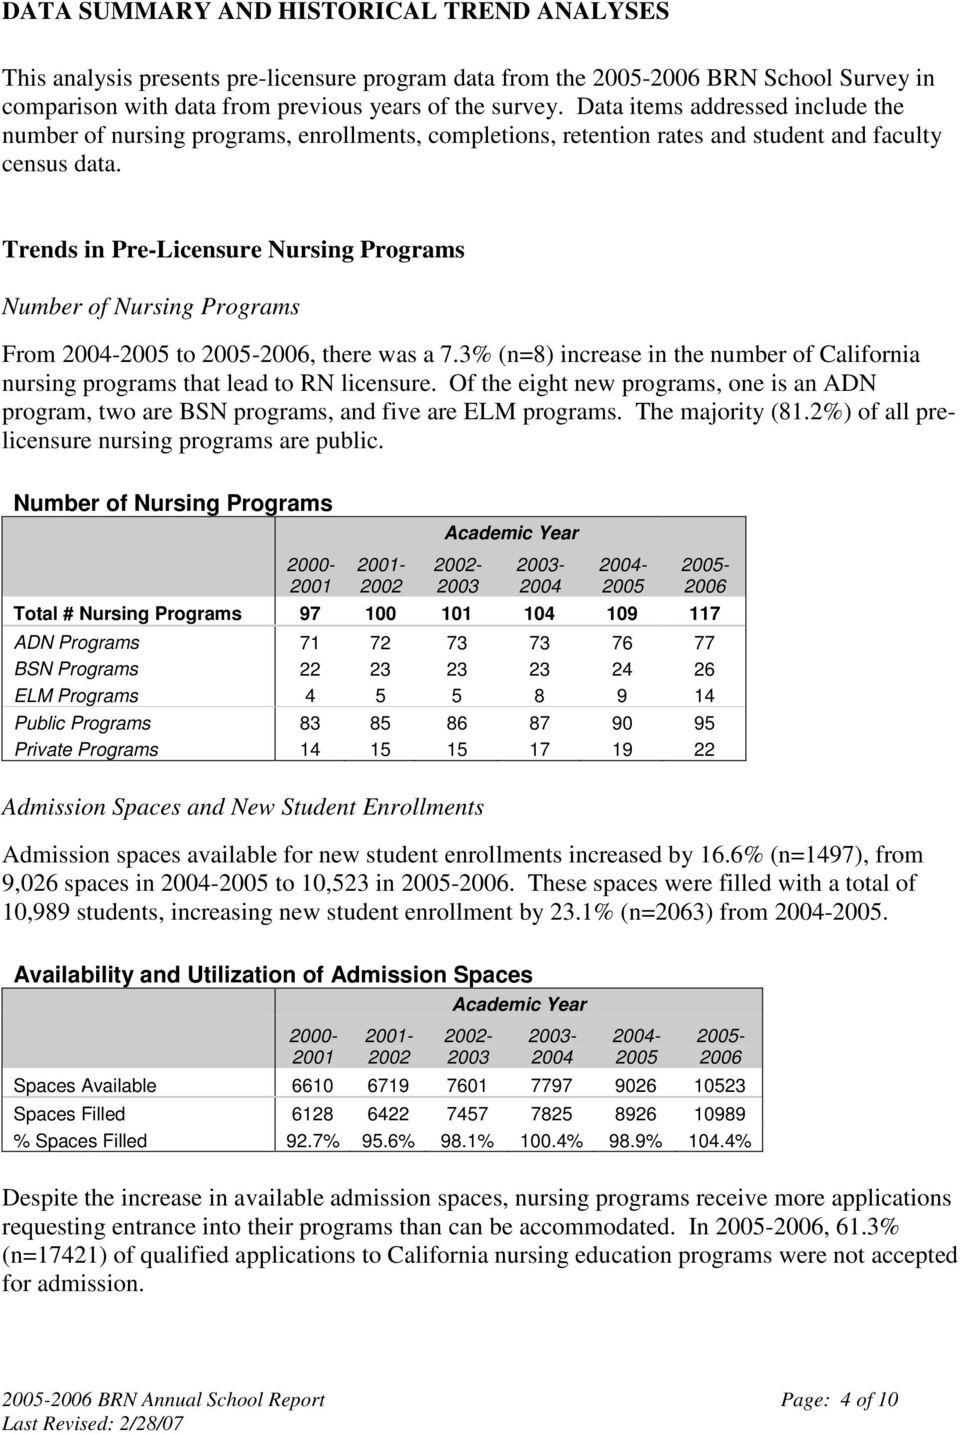 Trends in Pre-Licensure Nursing Programs Number of Nursing Programs From 2004-2005 to 2005-2006, there was a 7.3% (n=8) increase in the number of California nursing programs that lead to RN licensure.